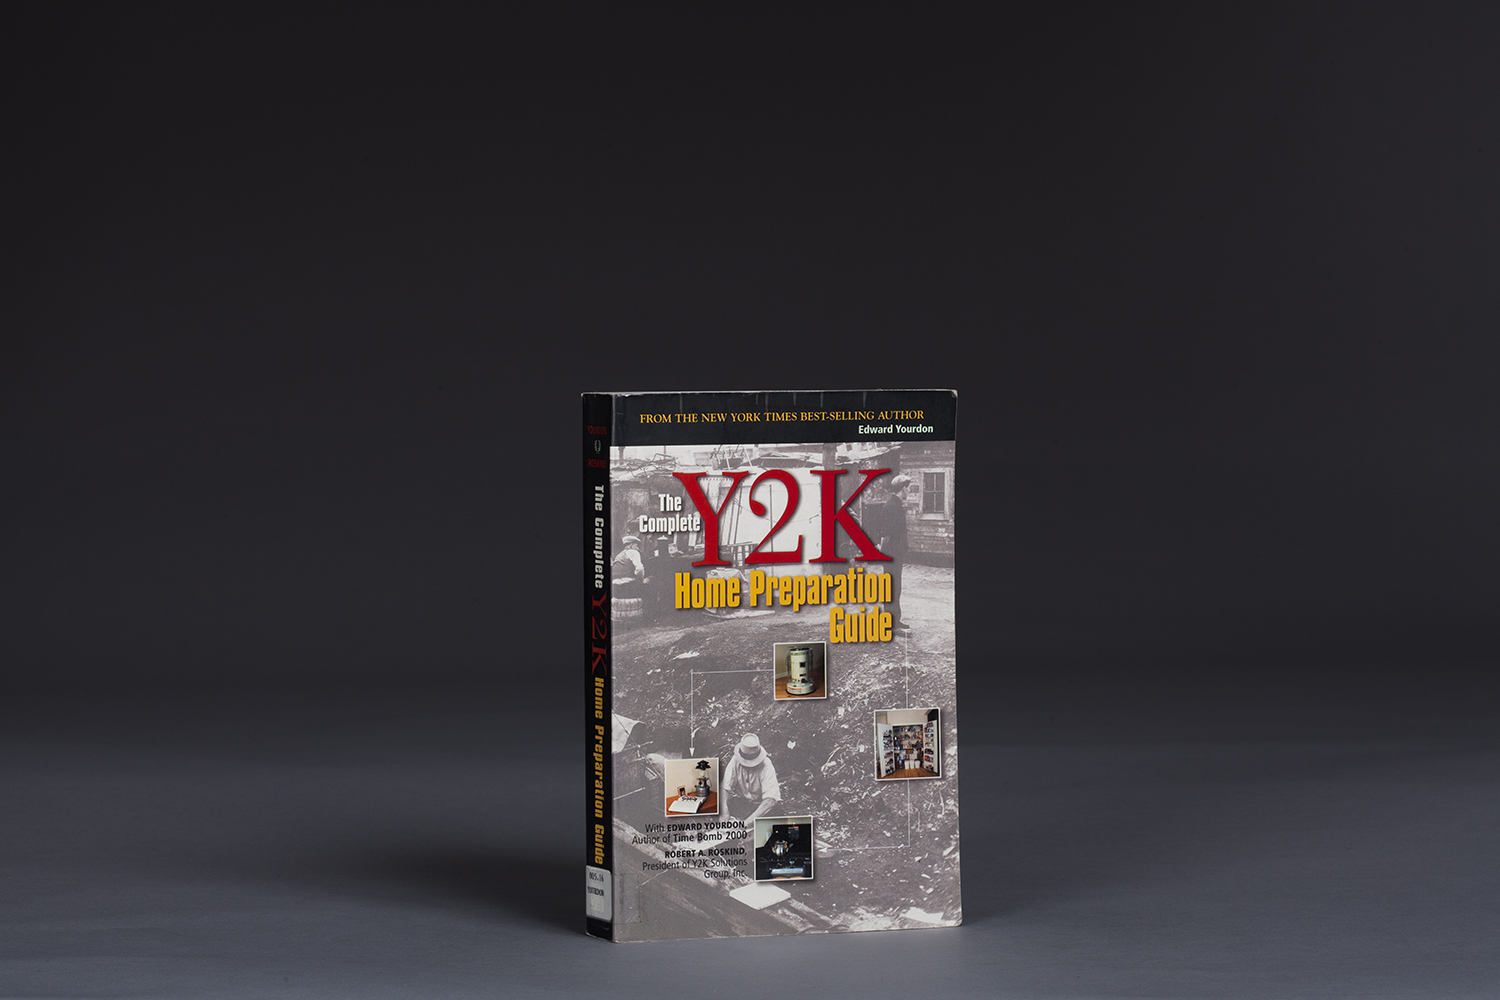 The Complete Y2K Home Preparation Guide - 0297 Cover.jpg